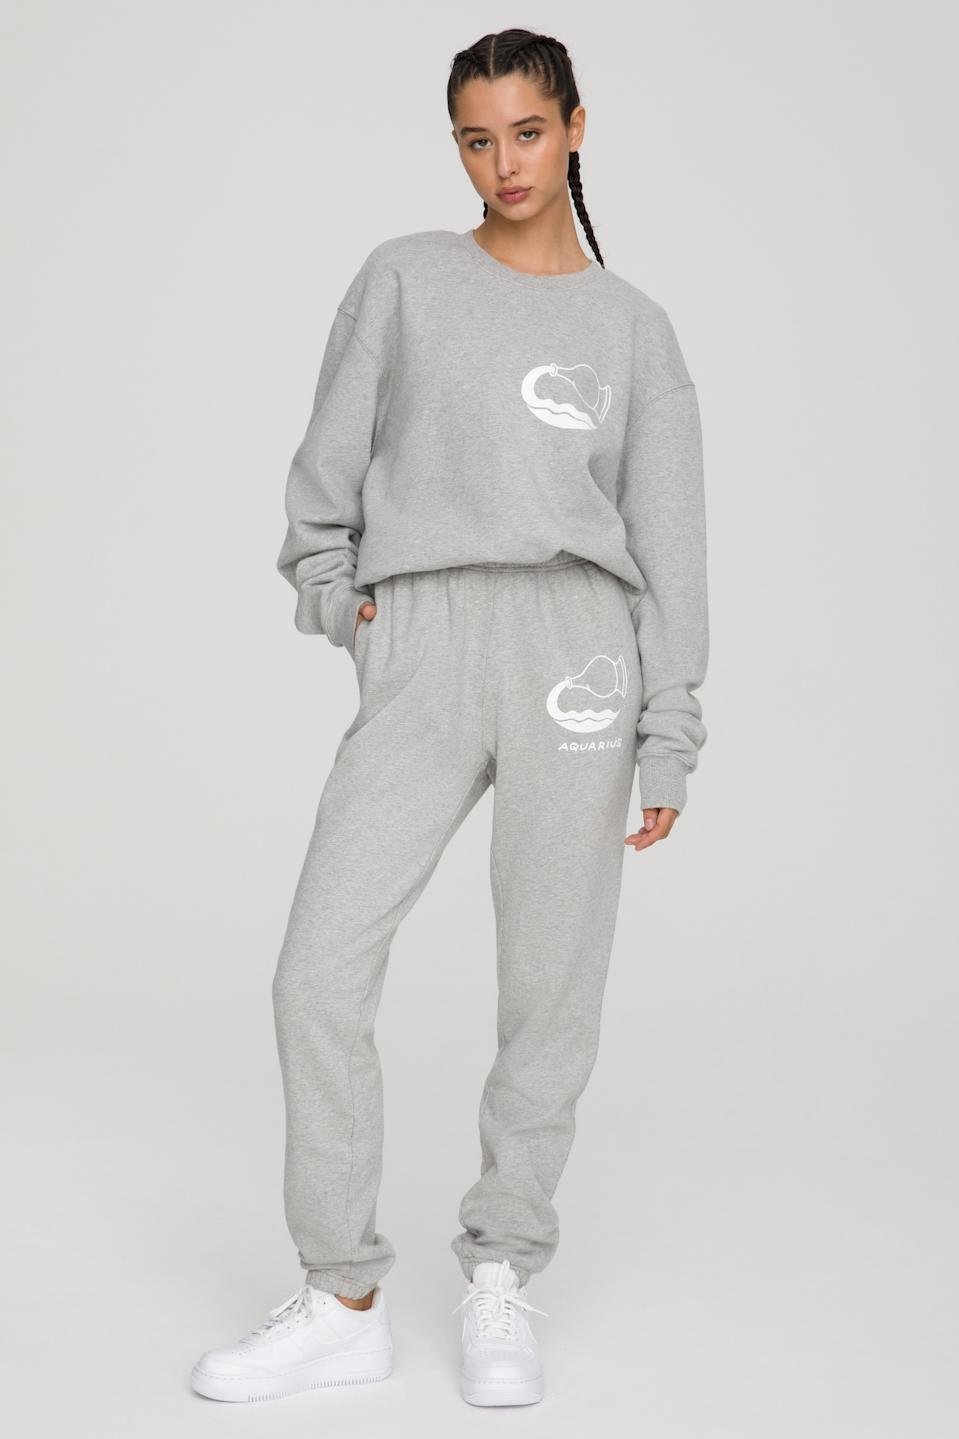 The Aquarius Zodiac Set from Good American. Sweatshirt $124 and sweatpants, $105.